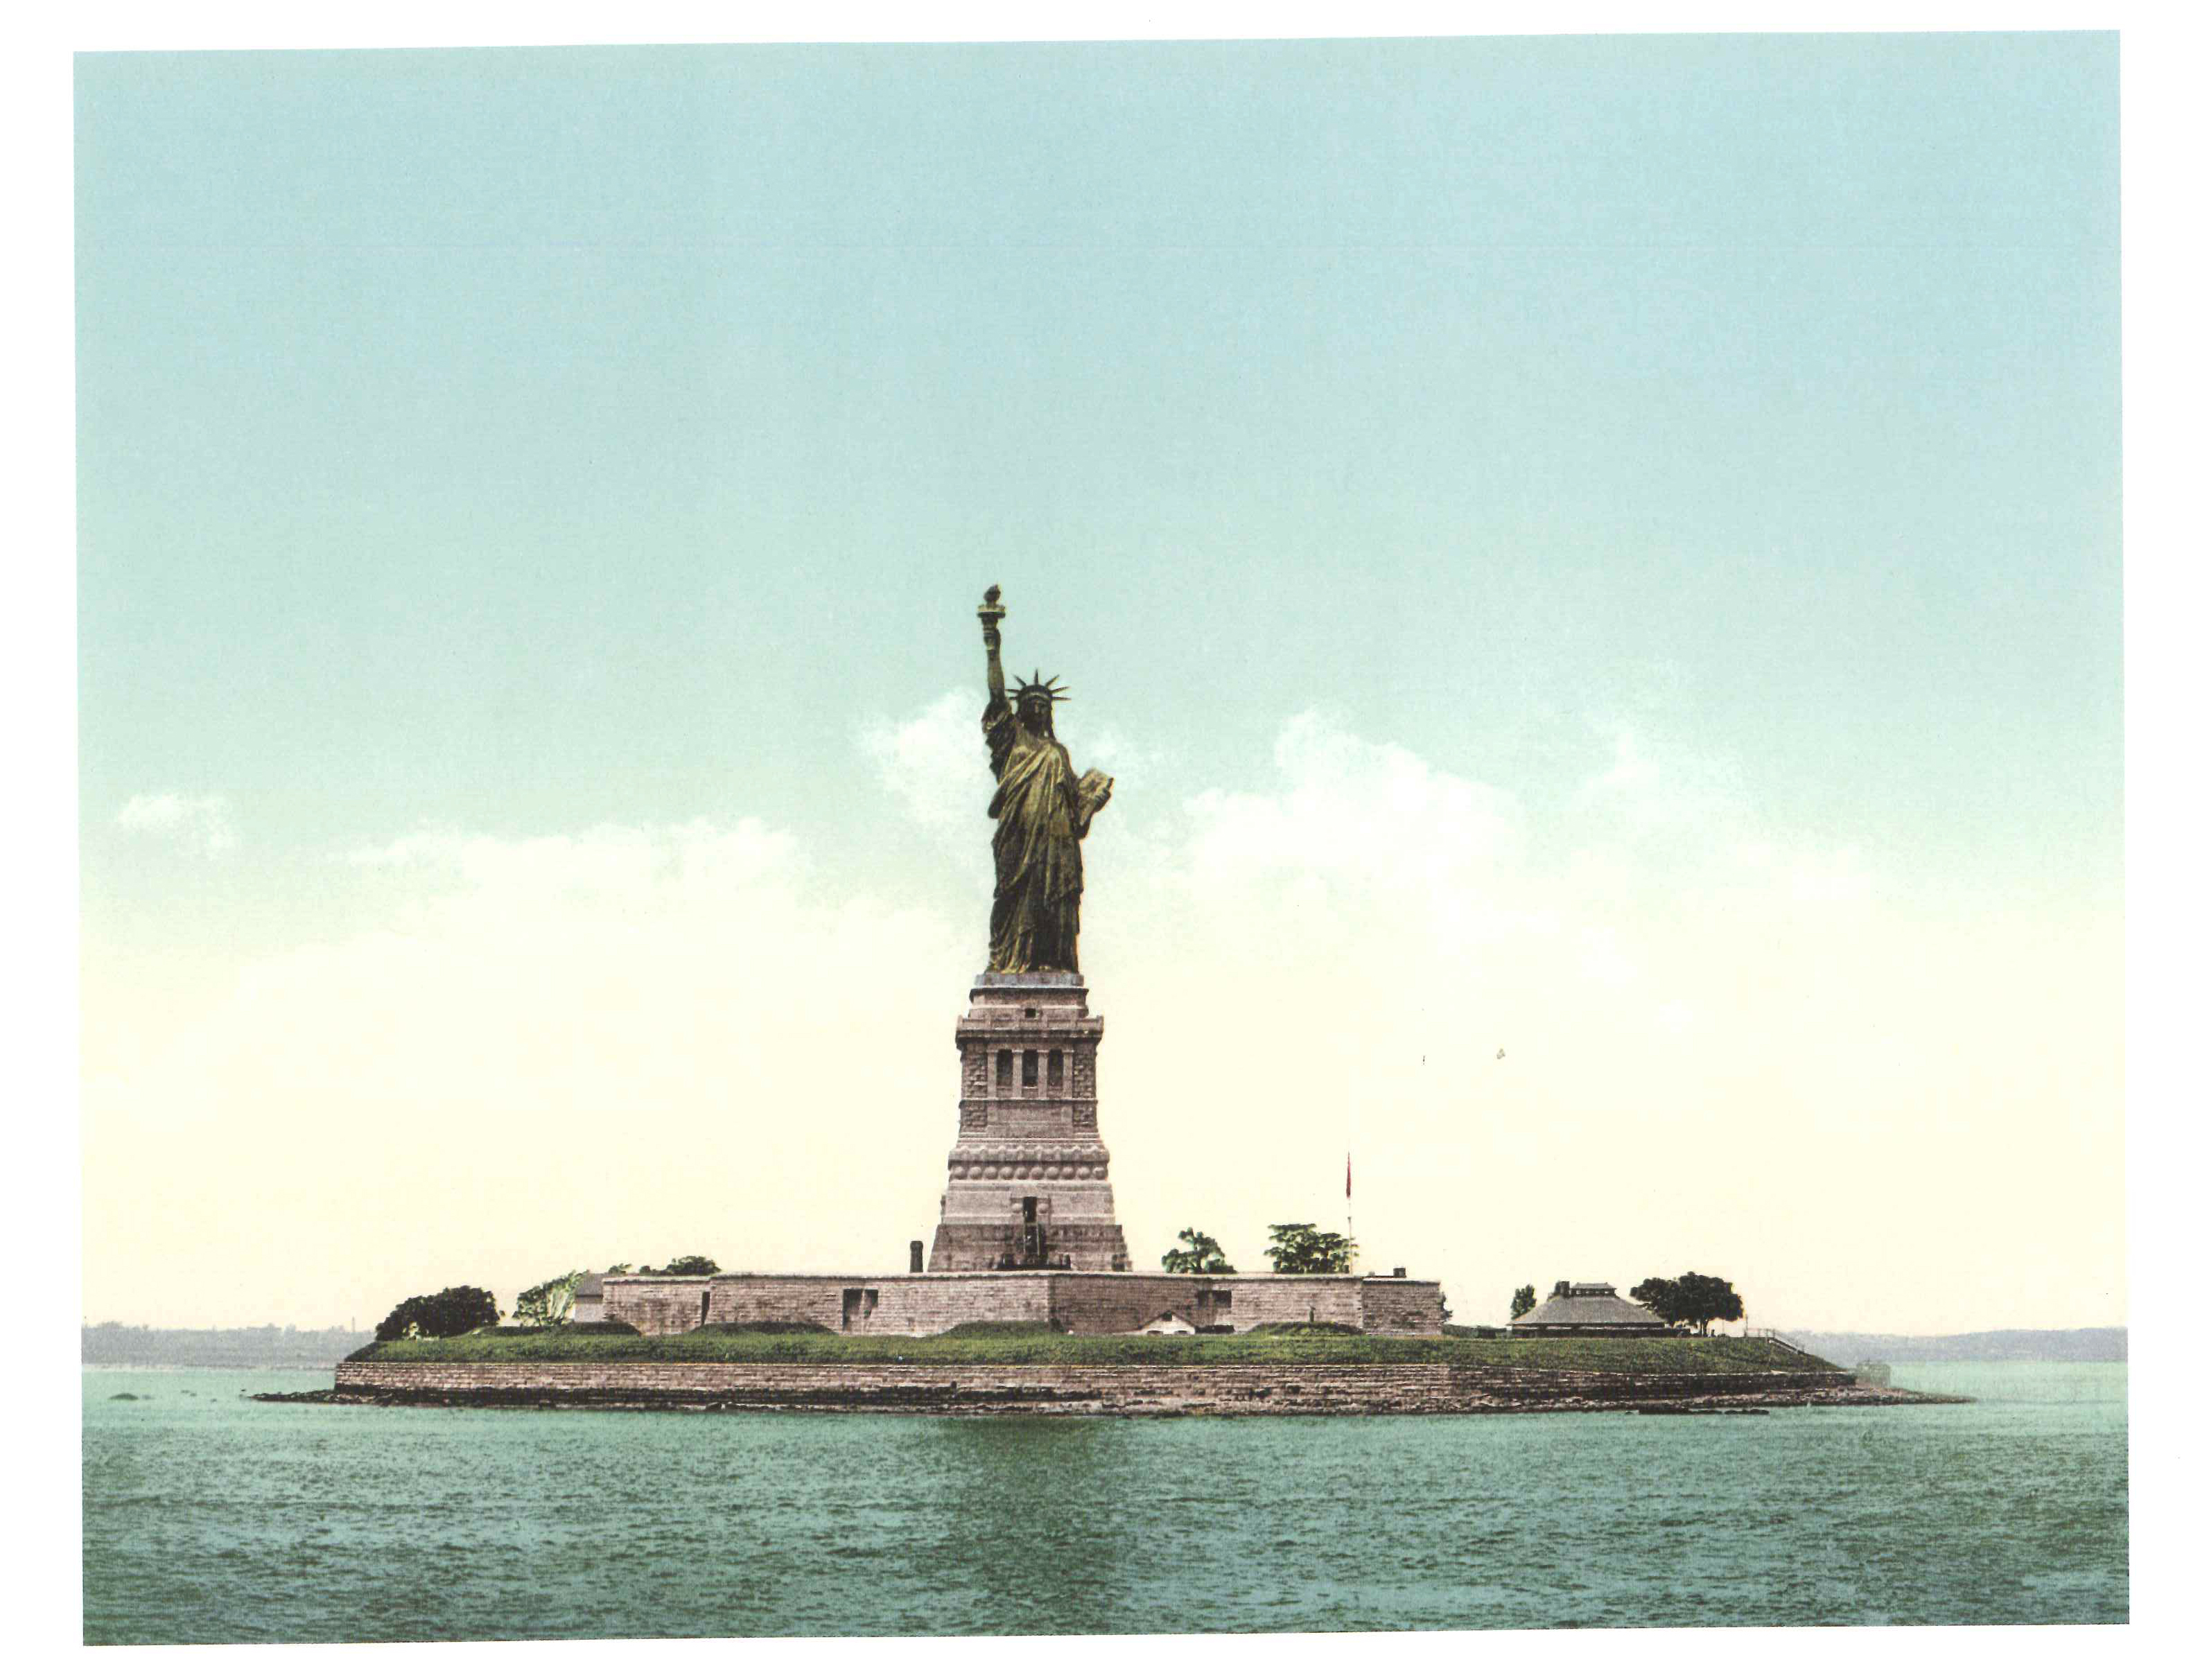 The Statue of Liberty in photochrom